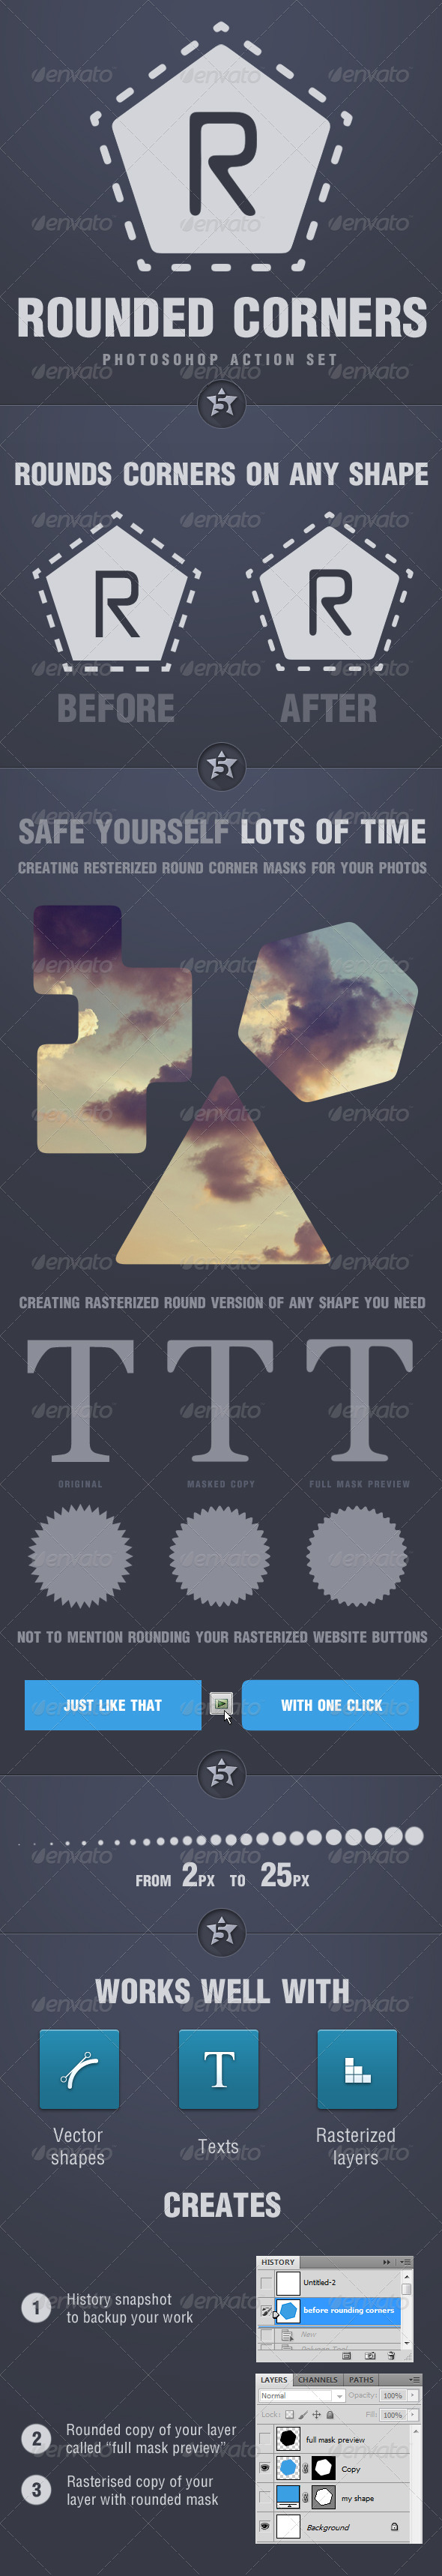 GraphicRiver Photoshop Round Corners Action Set 5171770